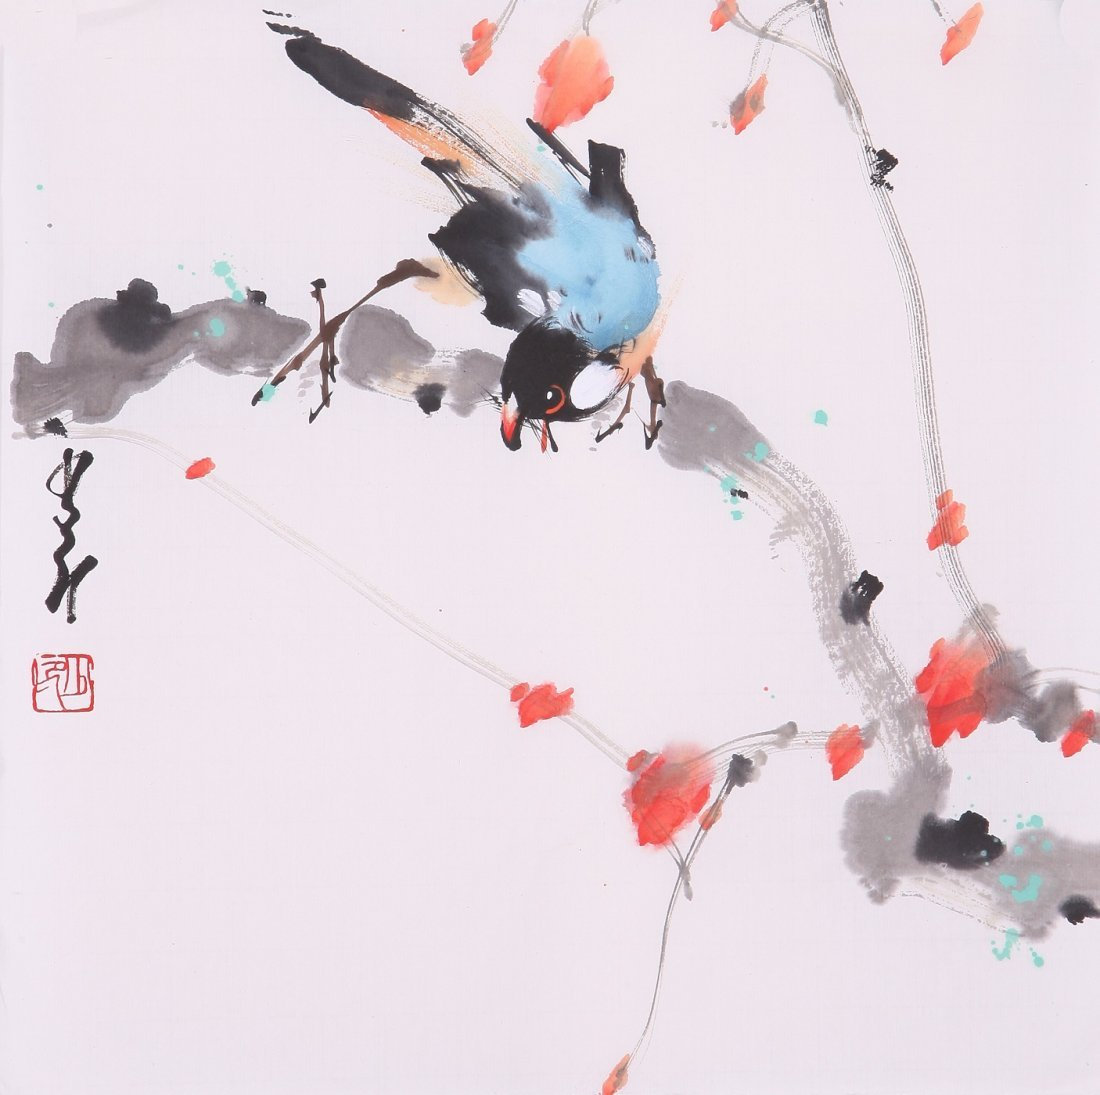 8010: Very fine chinese painting by Zhao Shaoang